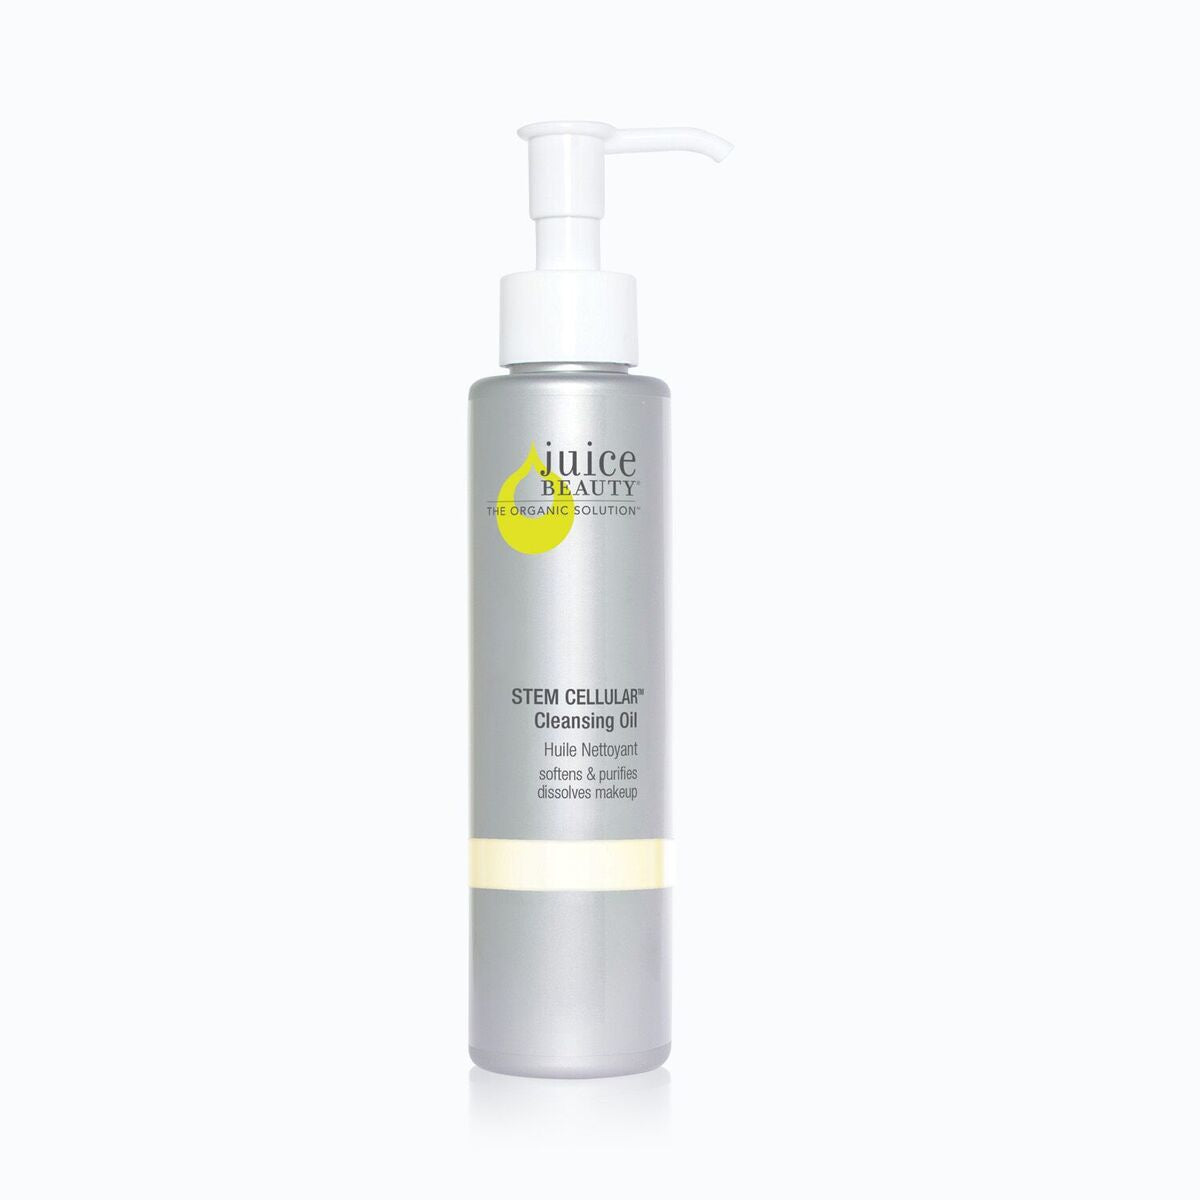 Stem Cellular™ Cleansing Oil